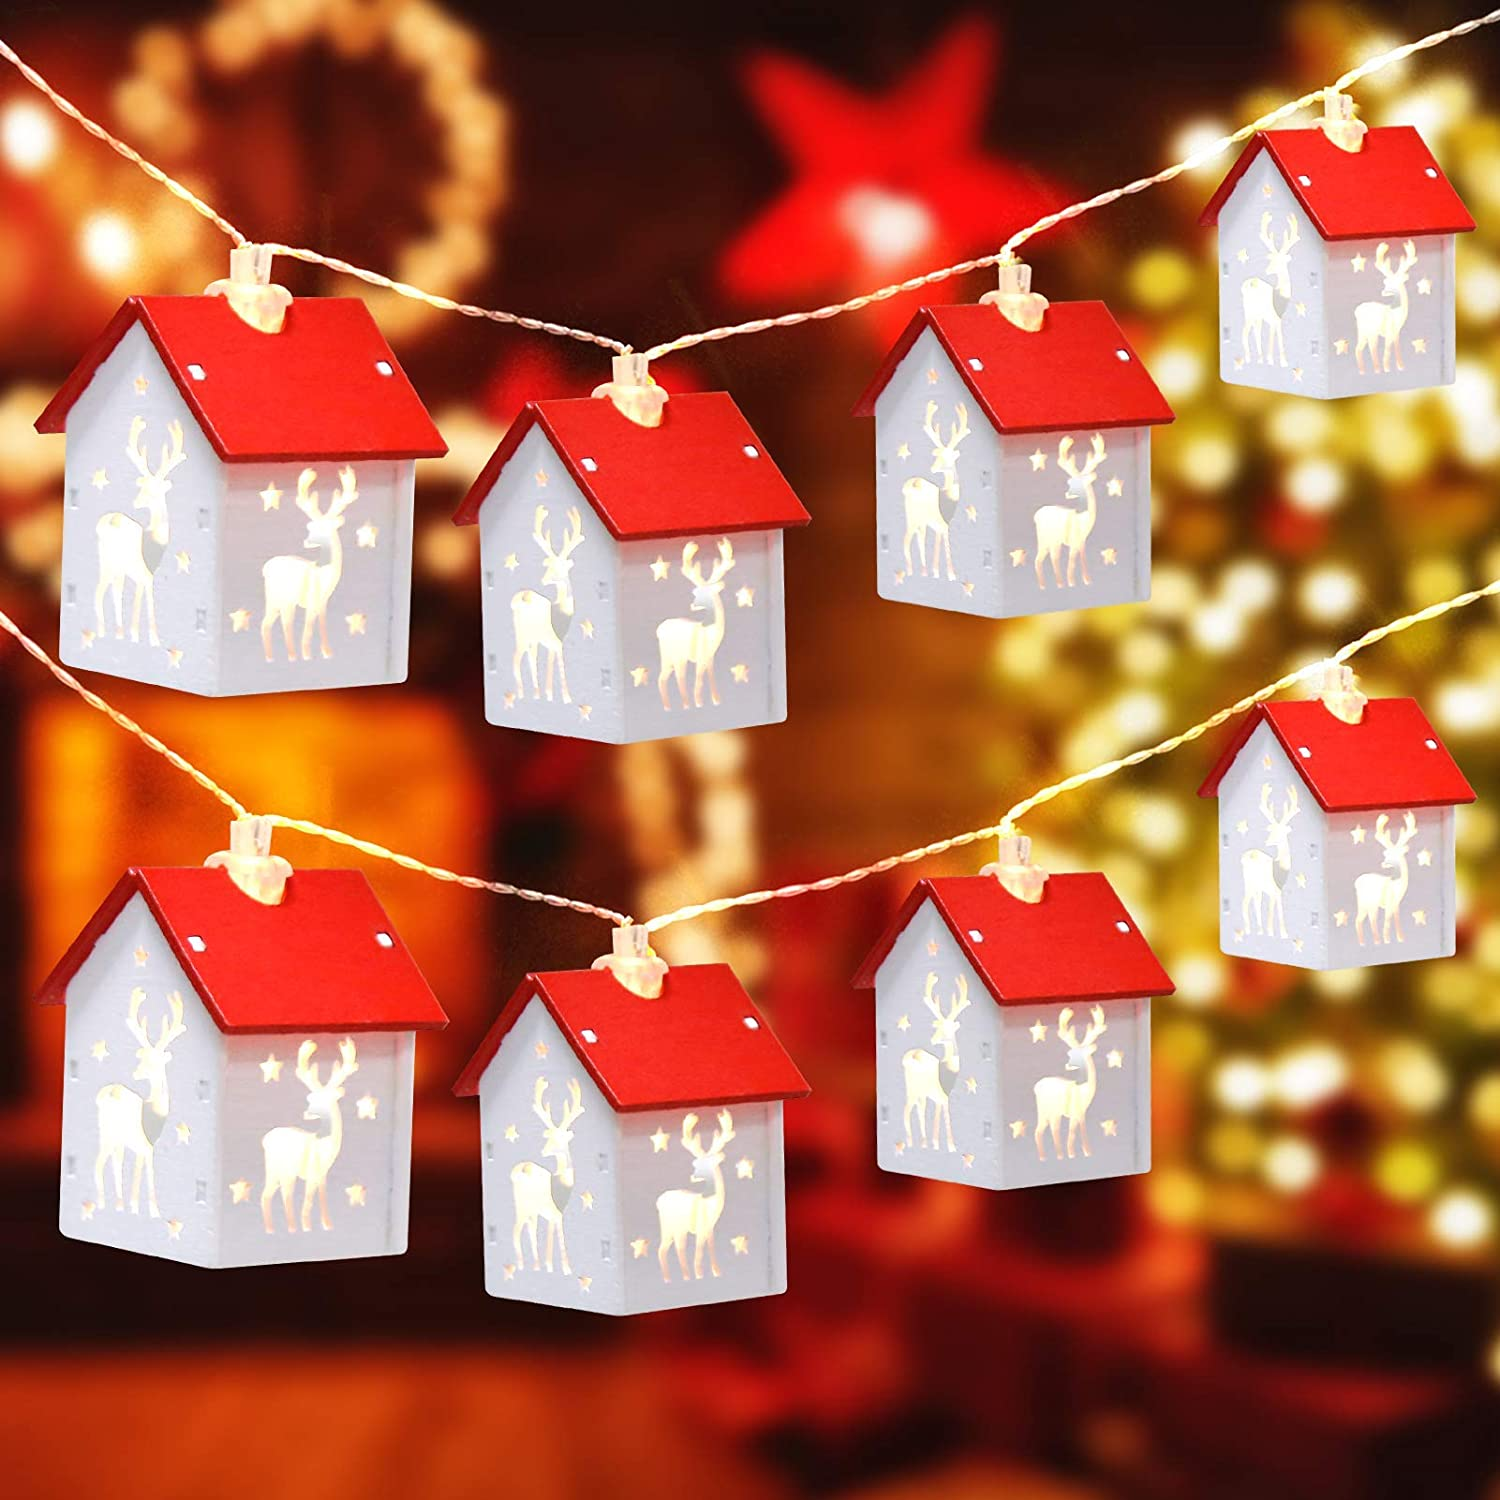 Difini Christmas Decoration, Indoor 15 ft 30 LED Christmas String Lights, 15 Pcs Wooden House Battery Operated Christmas Lights for Xmas Garden Patio Party Christmas Decor Outdoor s003